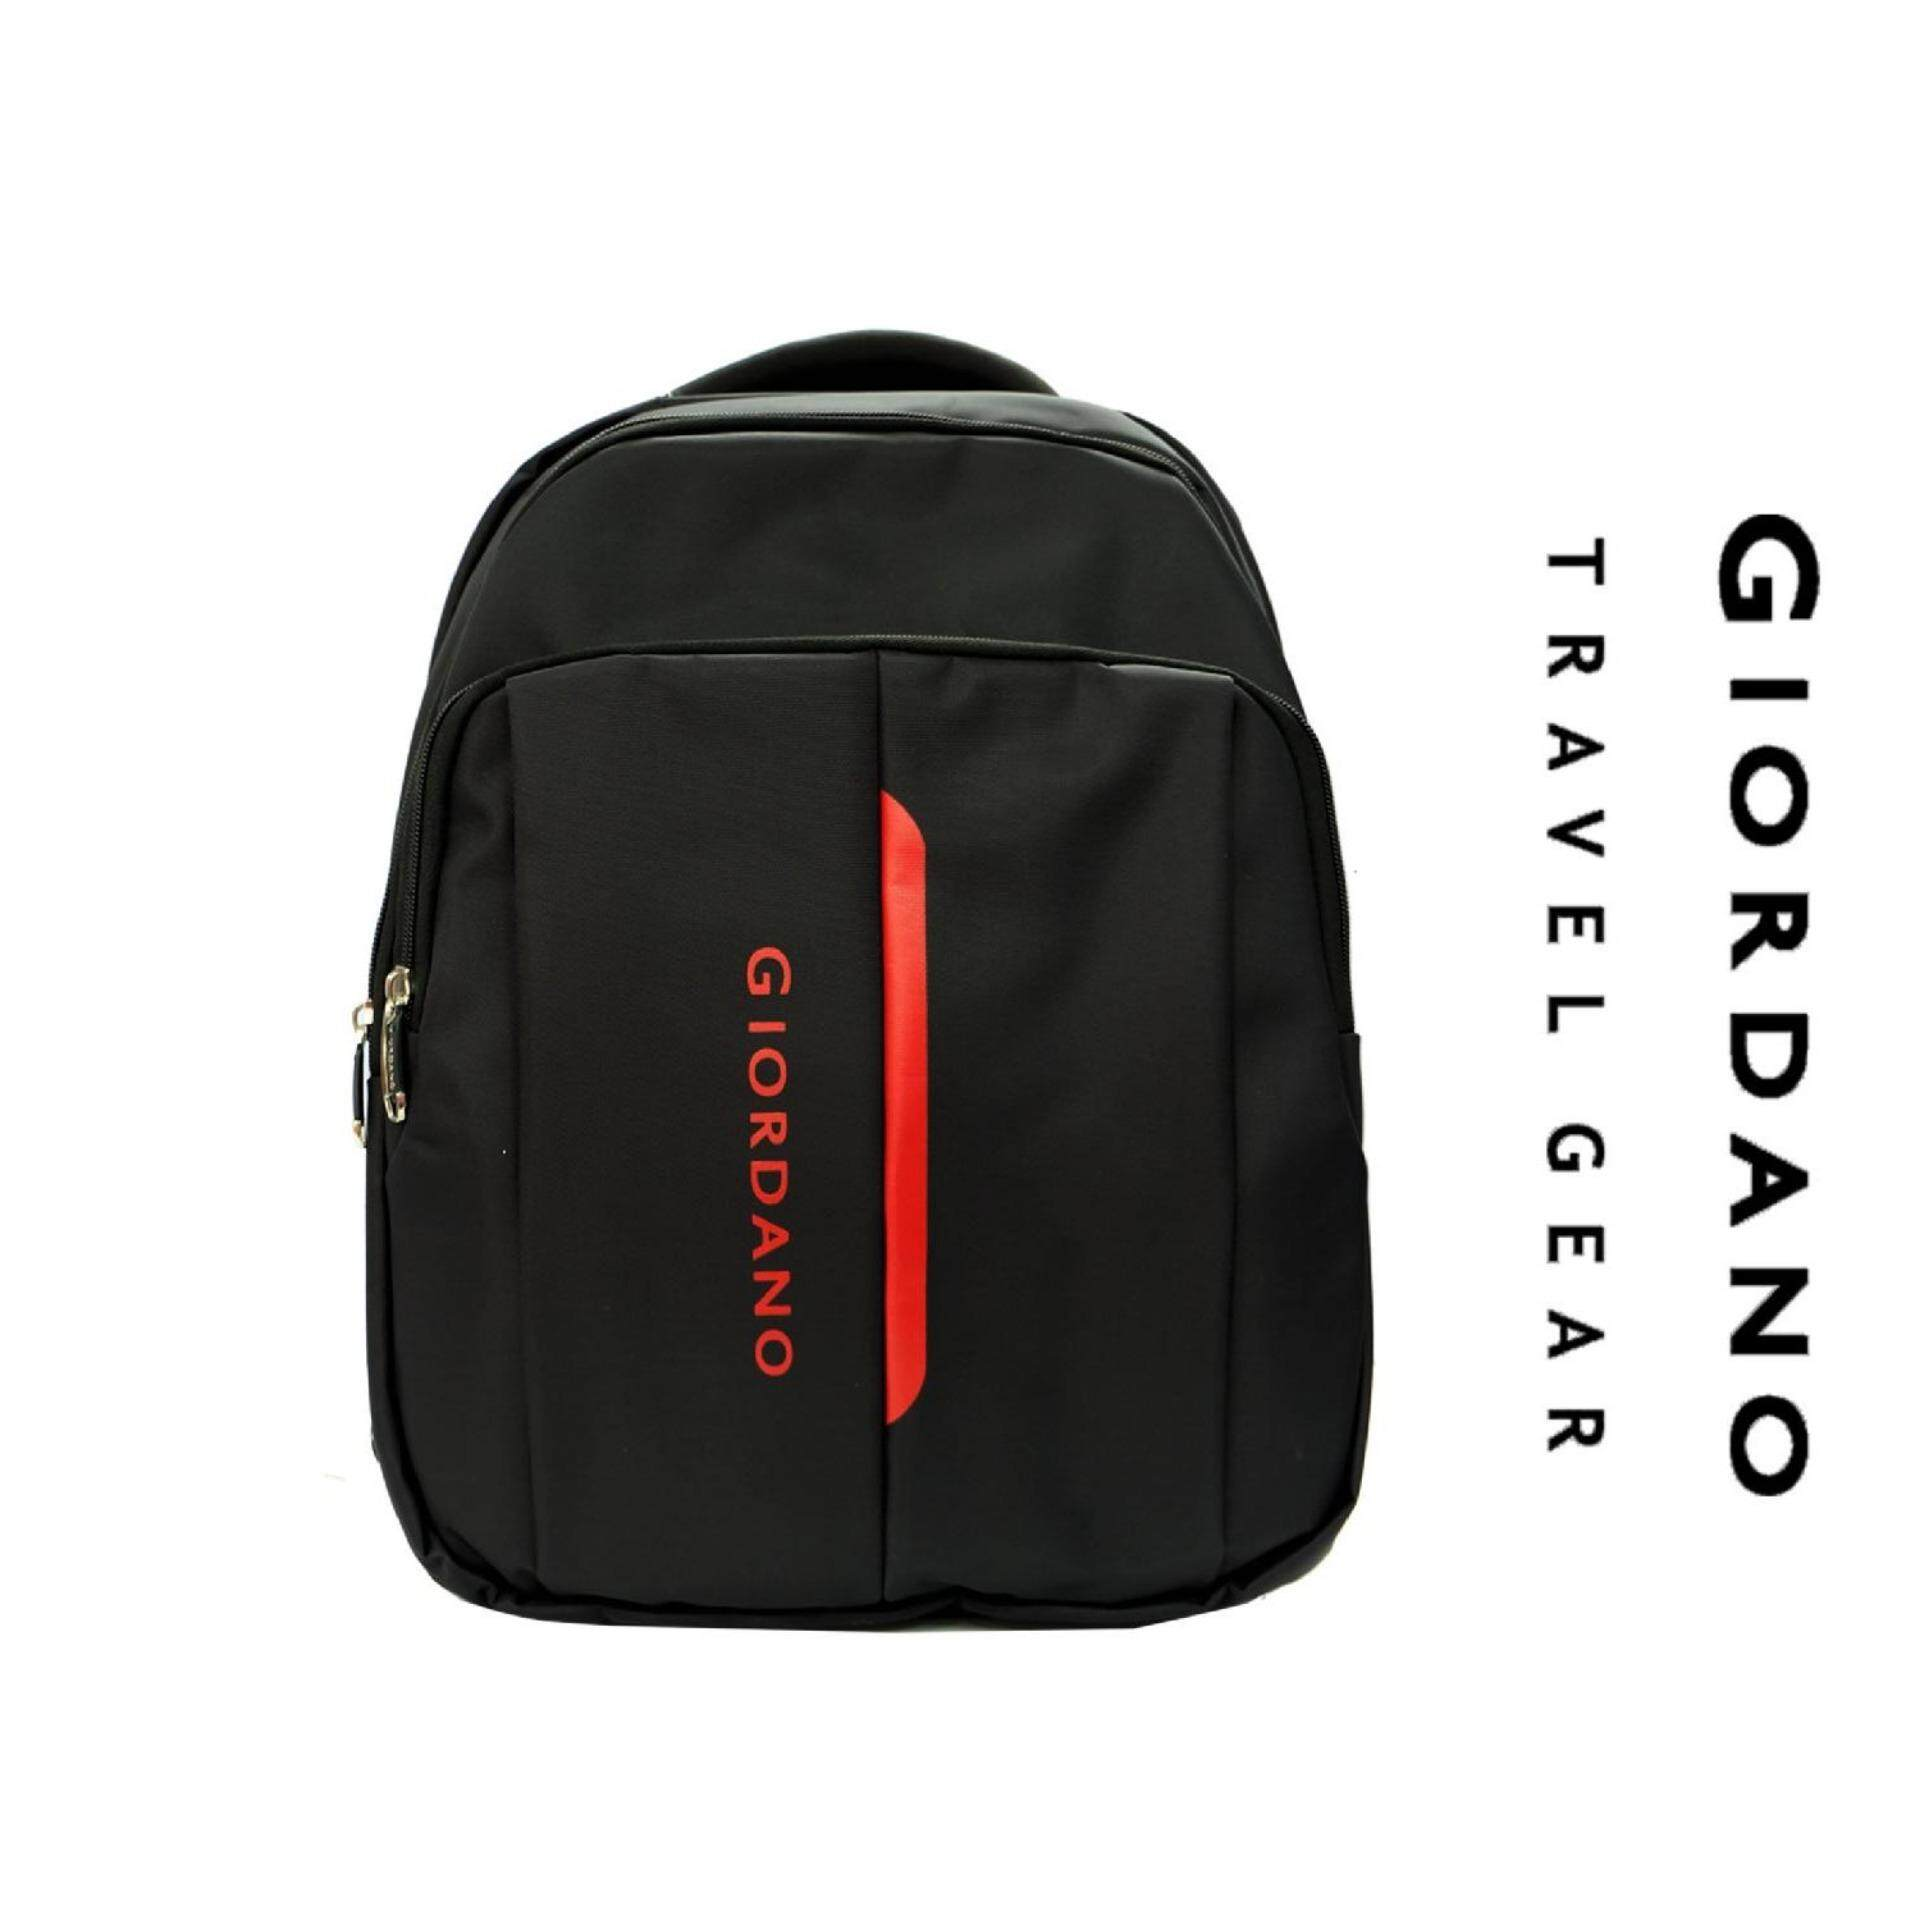 Giordano 19 inch Stylish Business Notebook Backpack  GN1679 -Black/Red